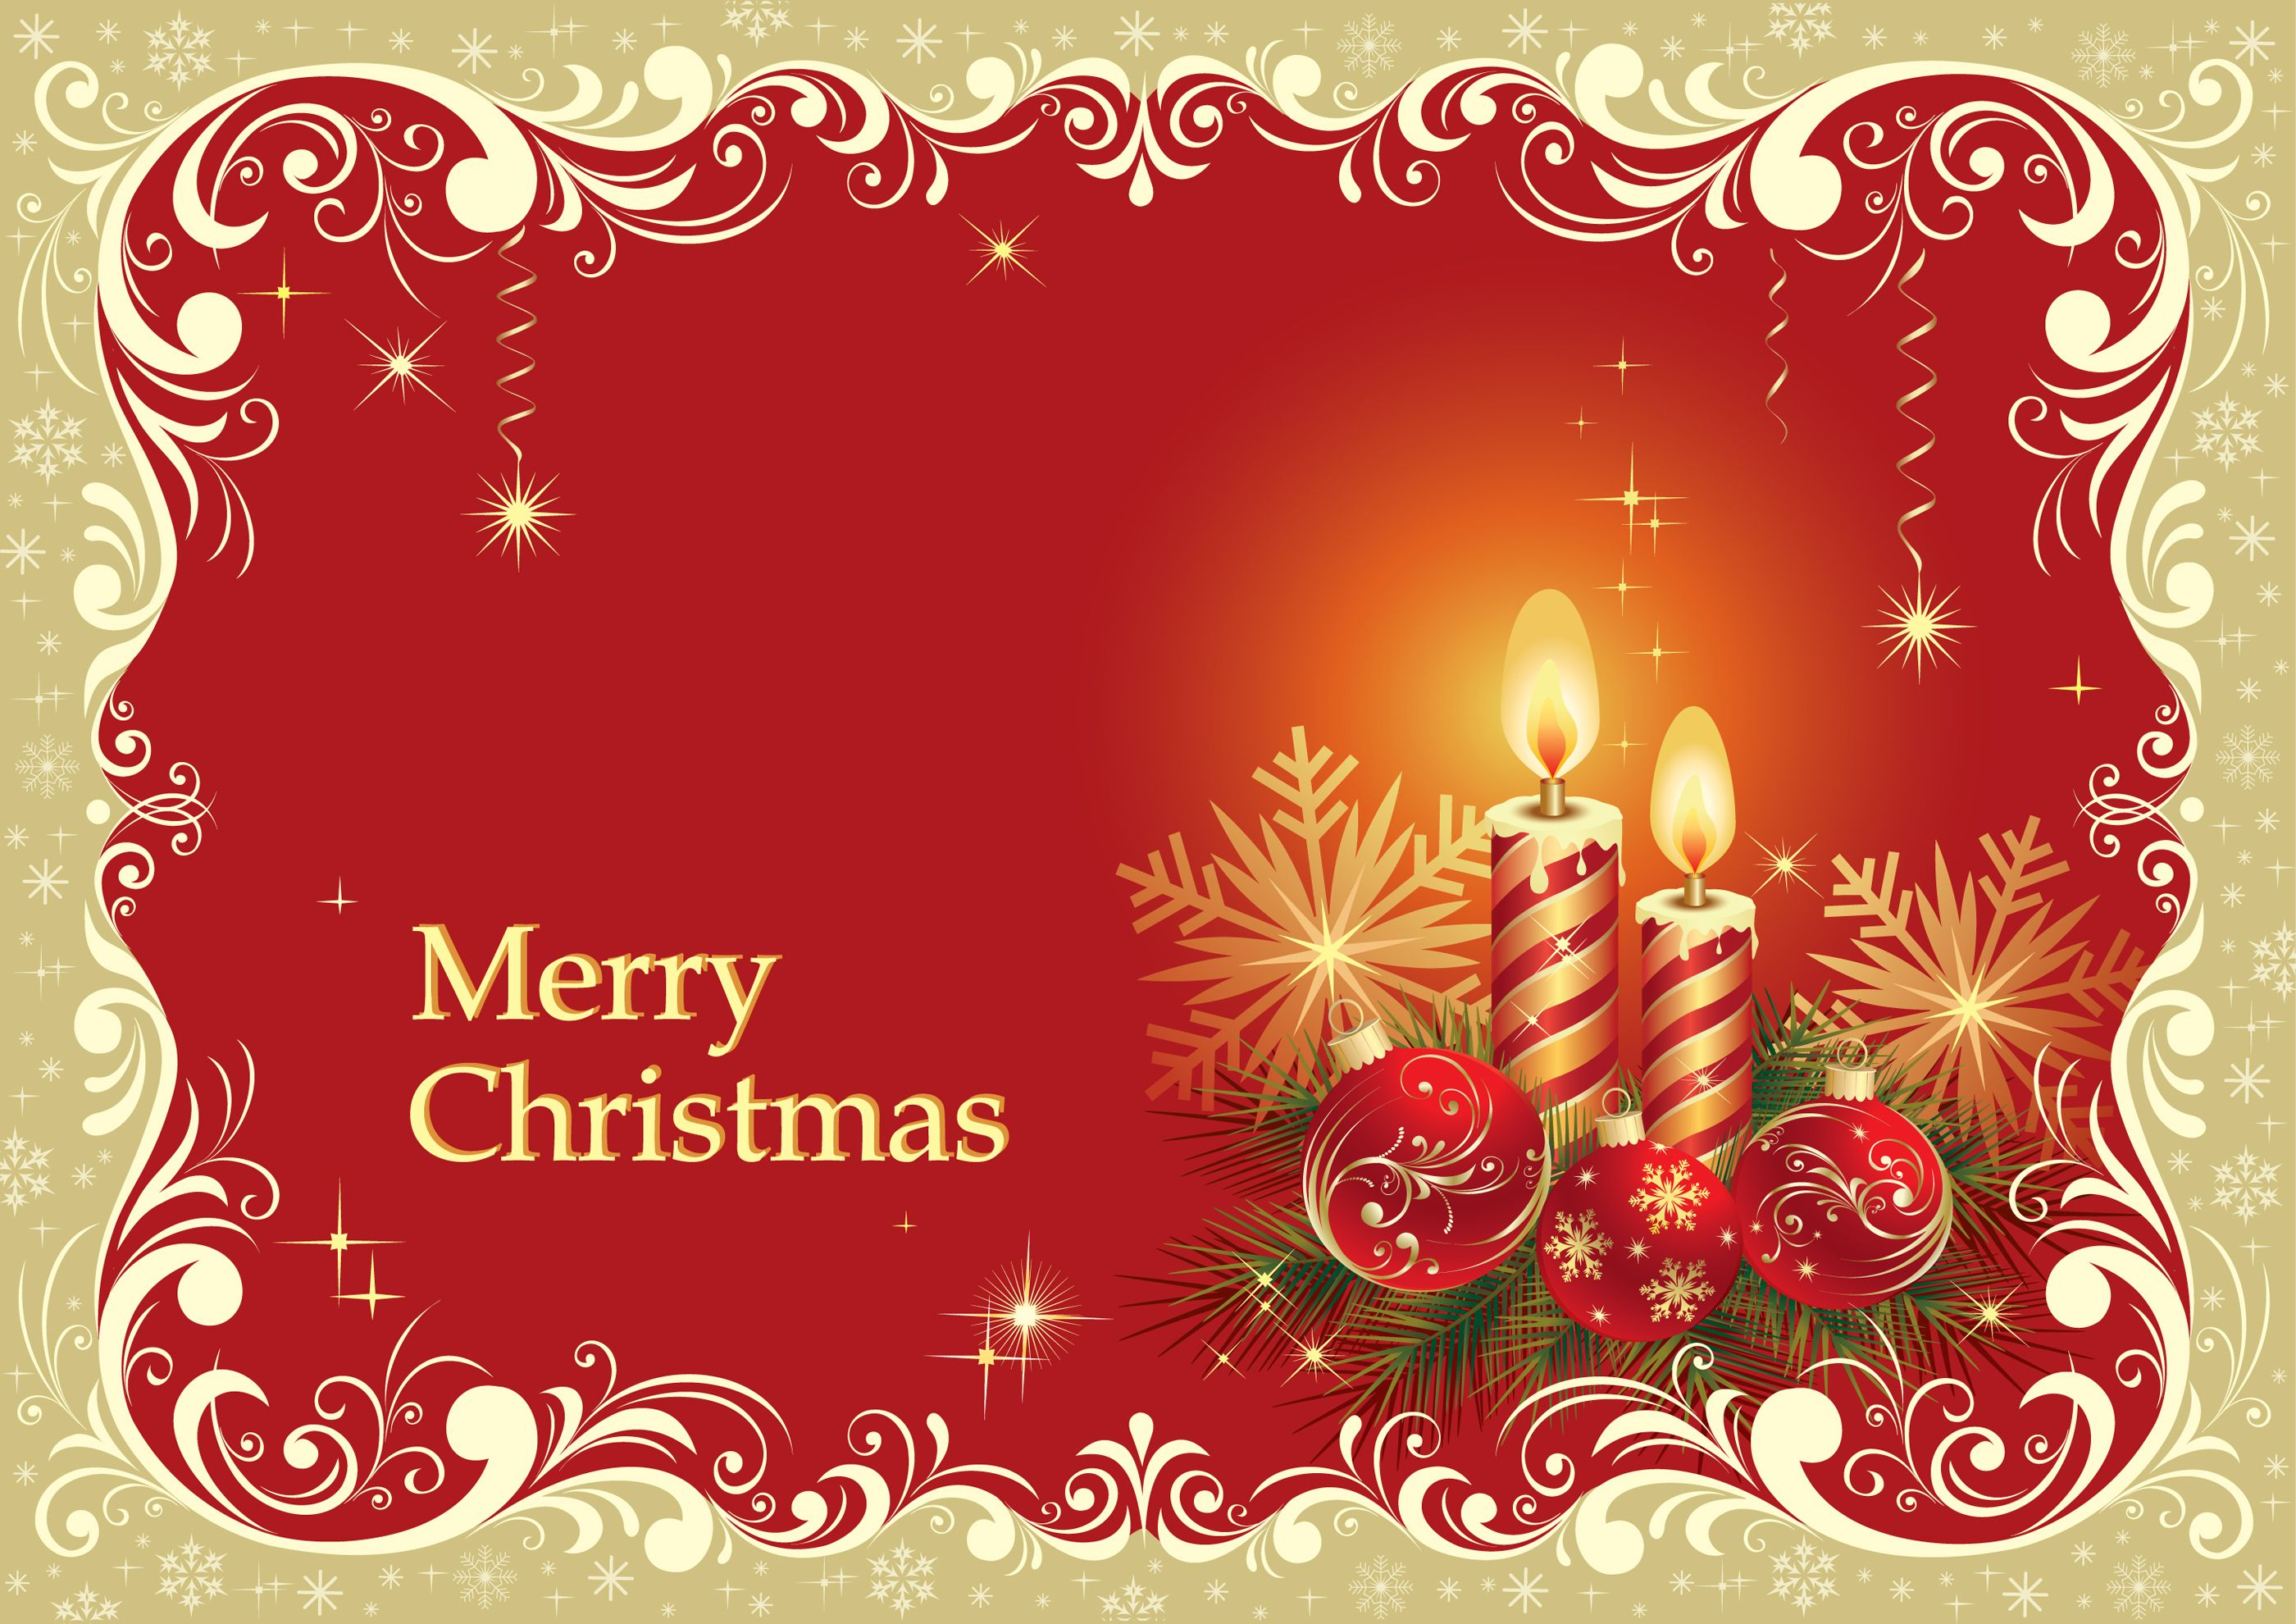 A Christmas card or greeting card is a great way to greet